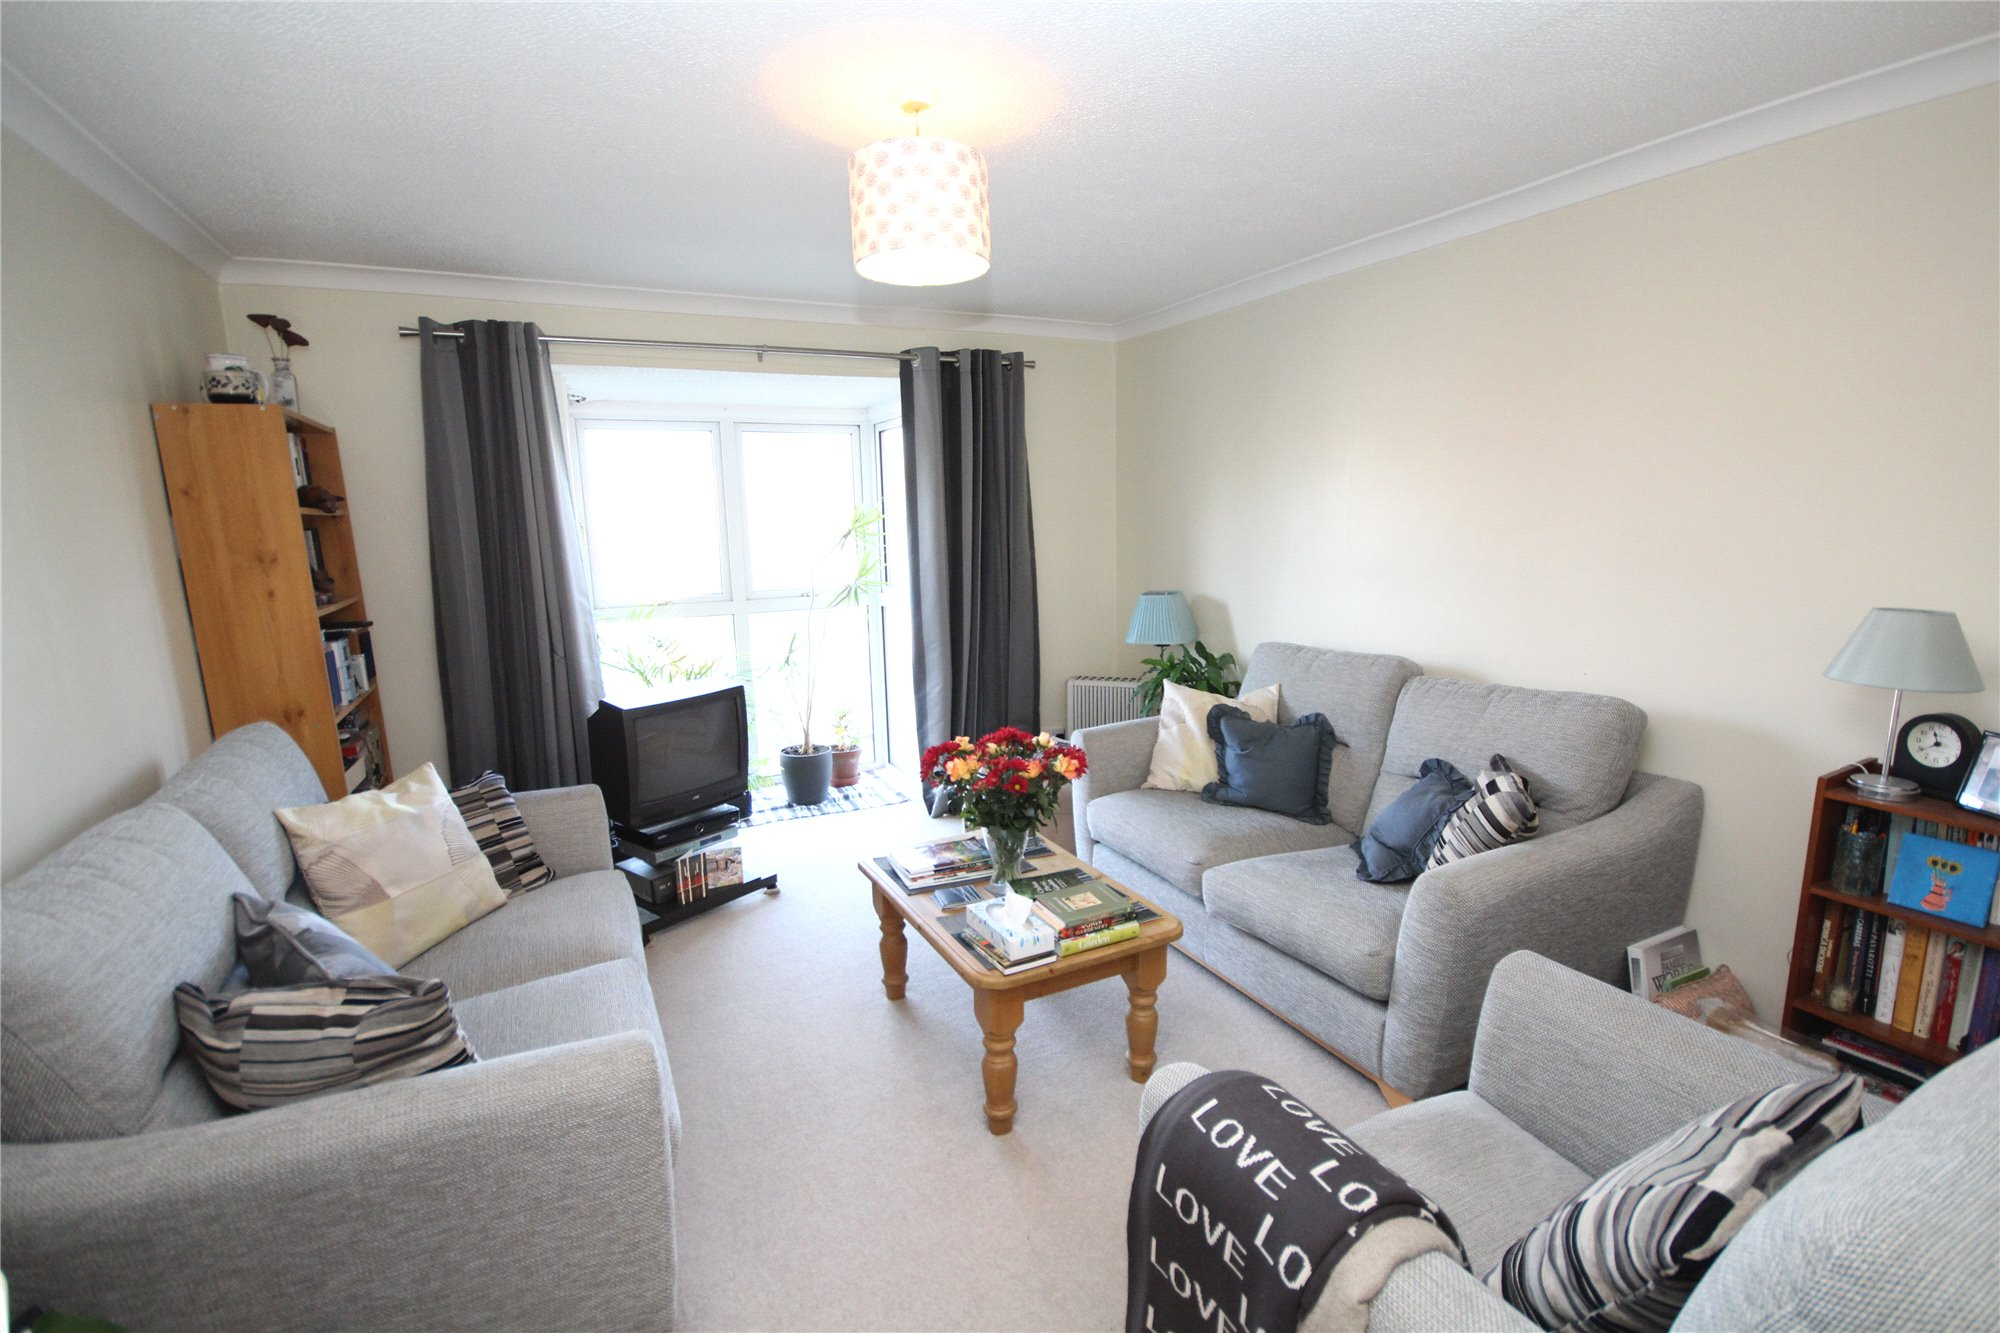 Sharnbrooke Close, Welling, Kent, DA16